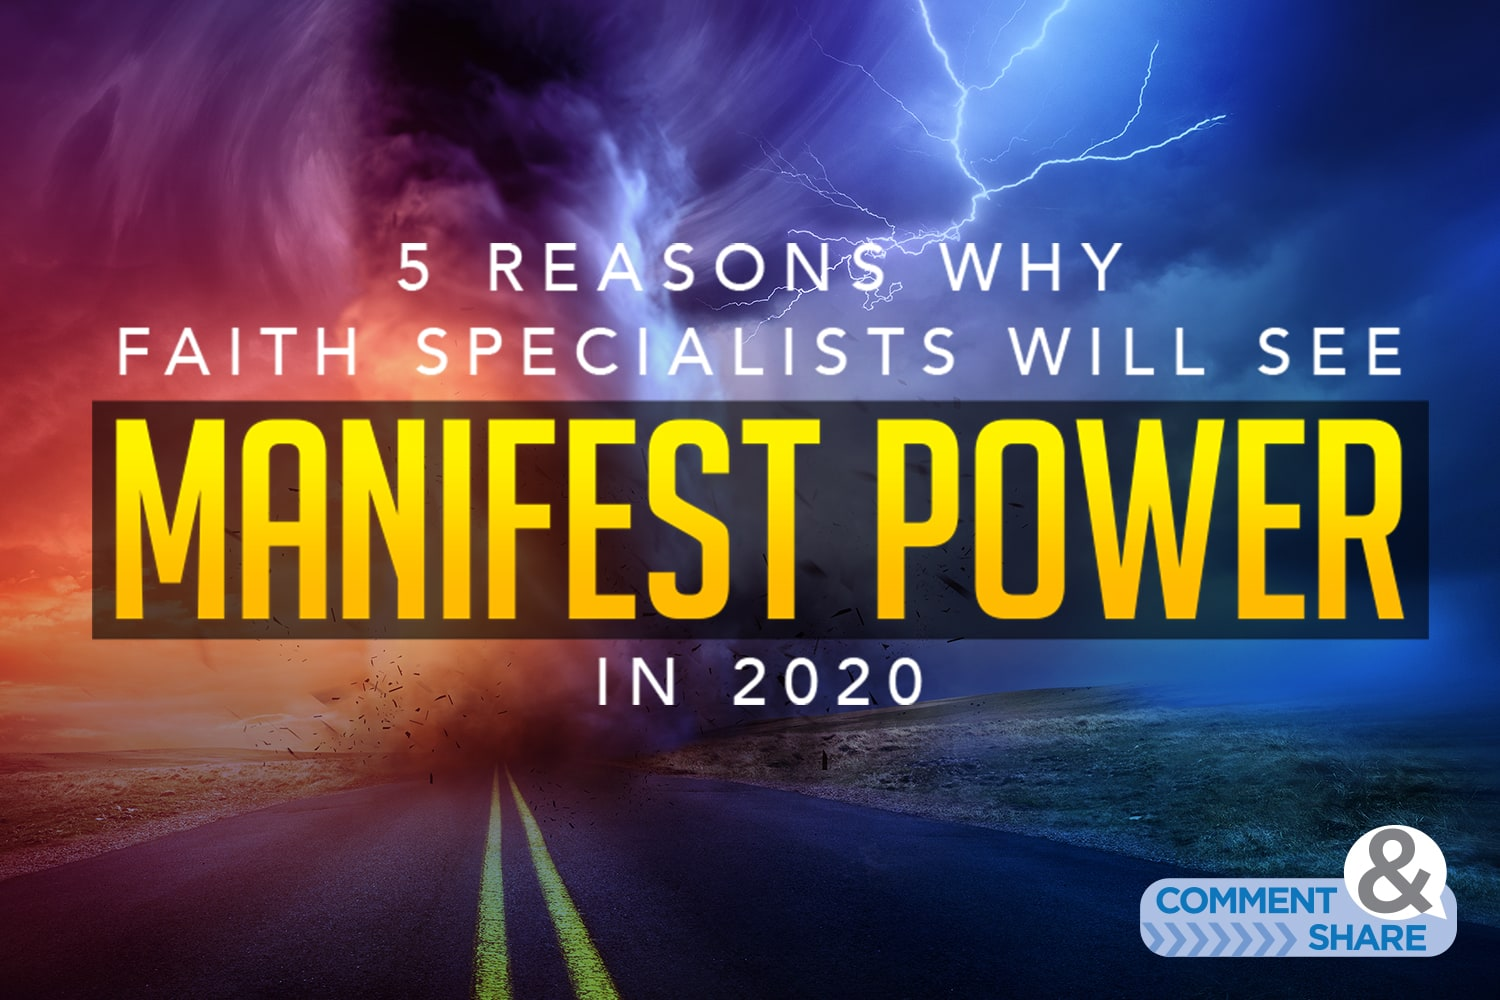 5 Reasons Faith Specialists Will See God's Manifest Power in 2020